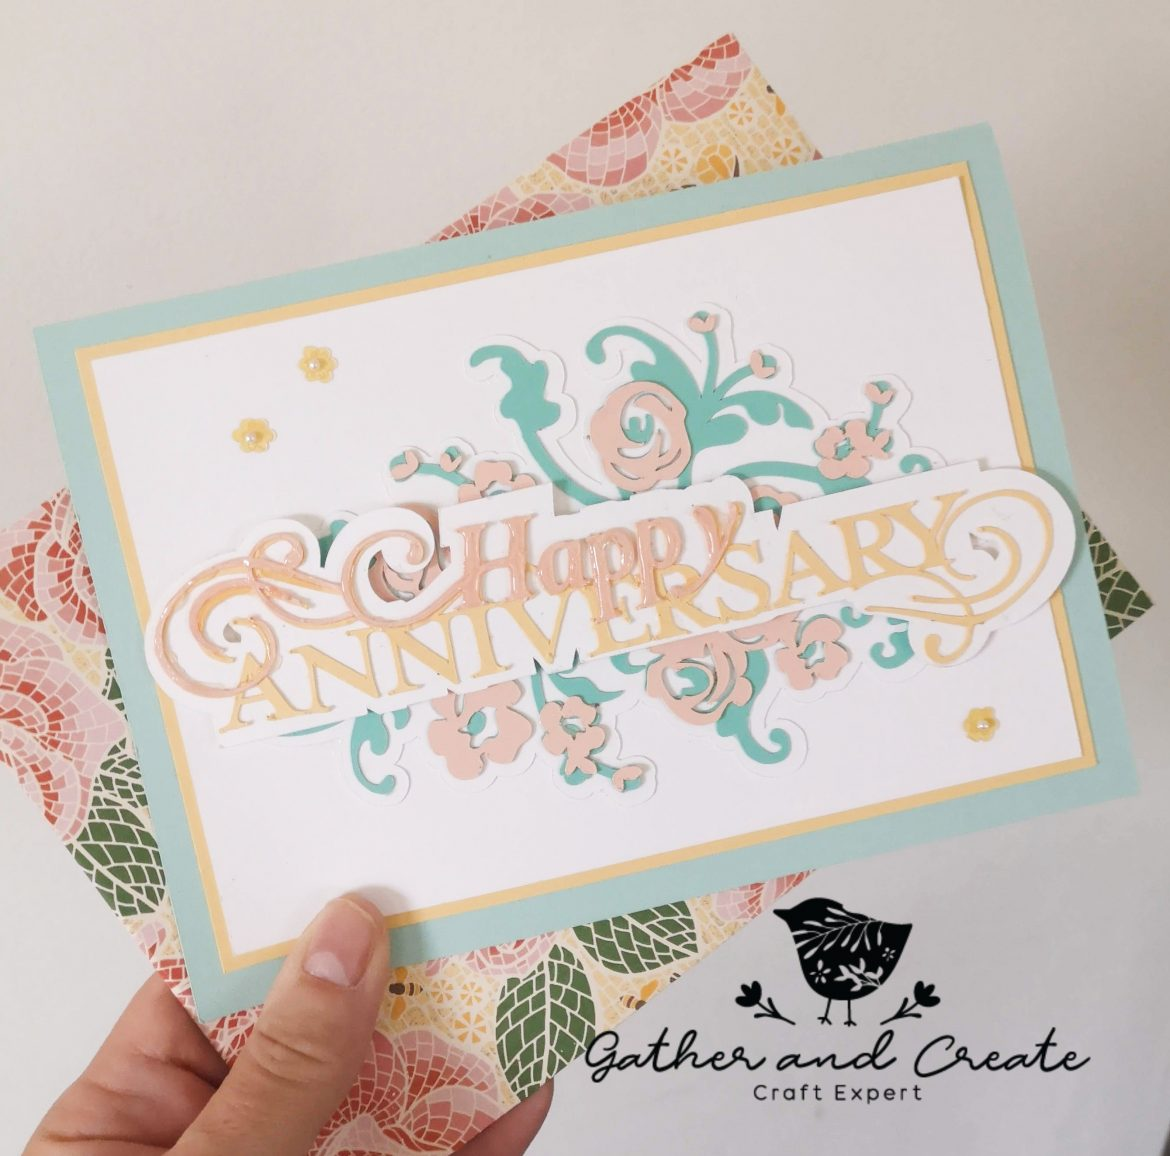 Wedding Anniversary Card using the Cricut Maker | Gather and Create